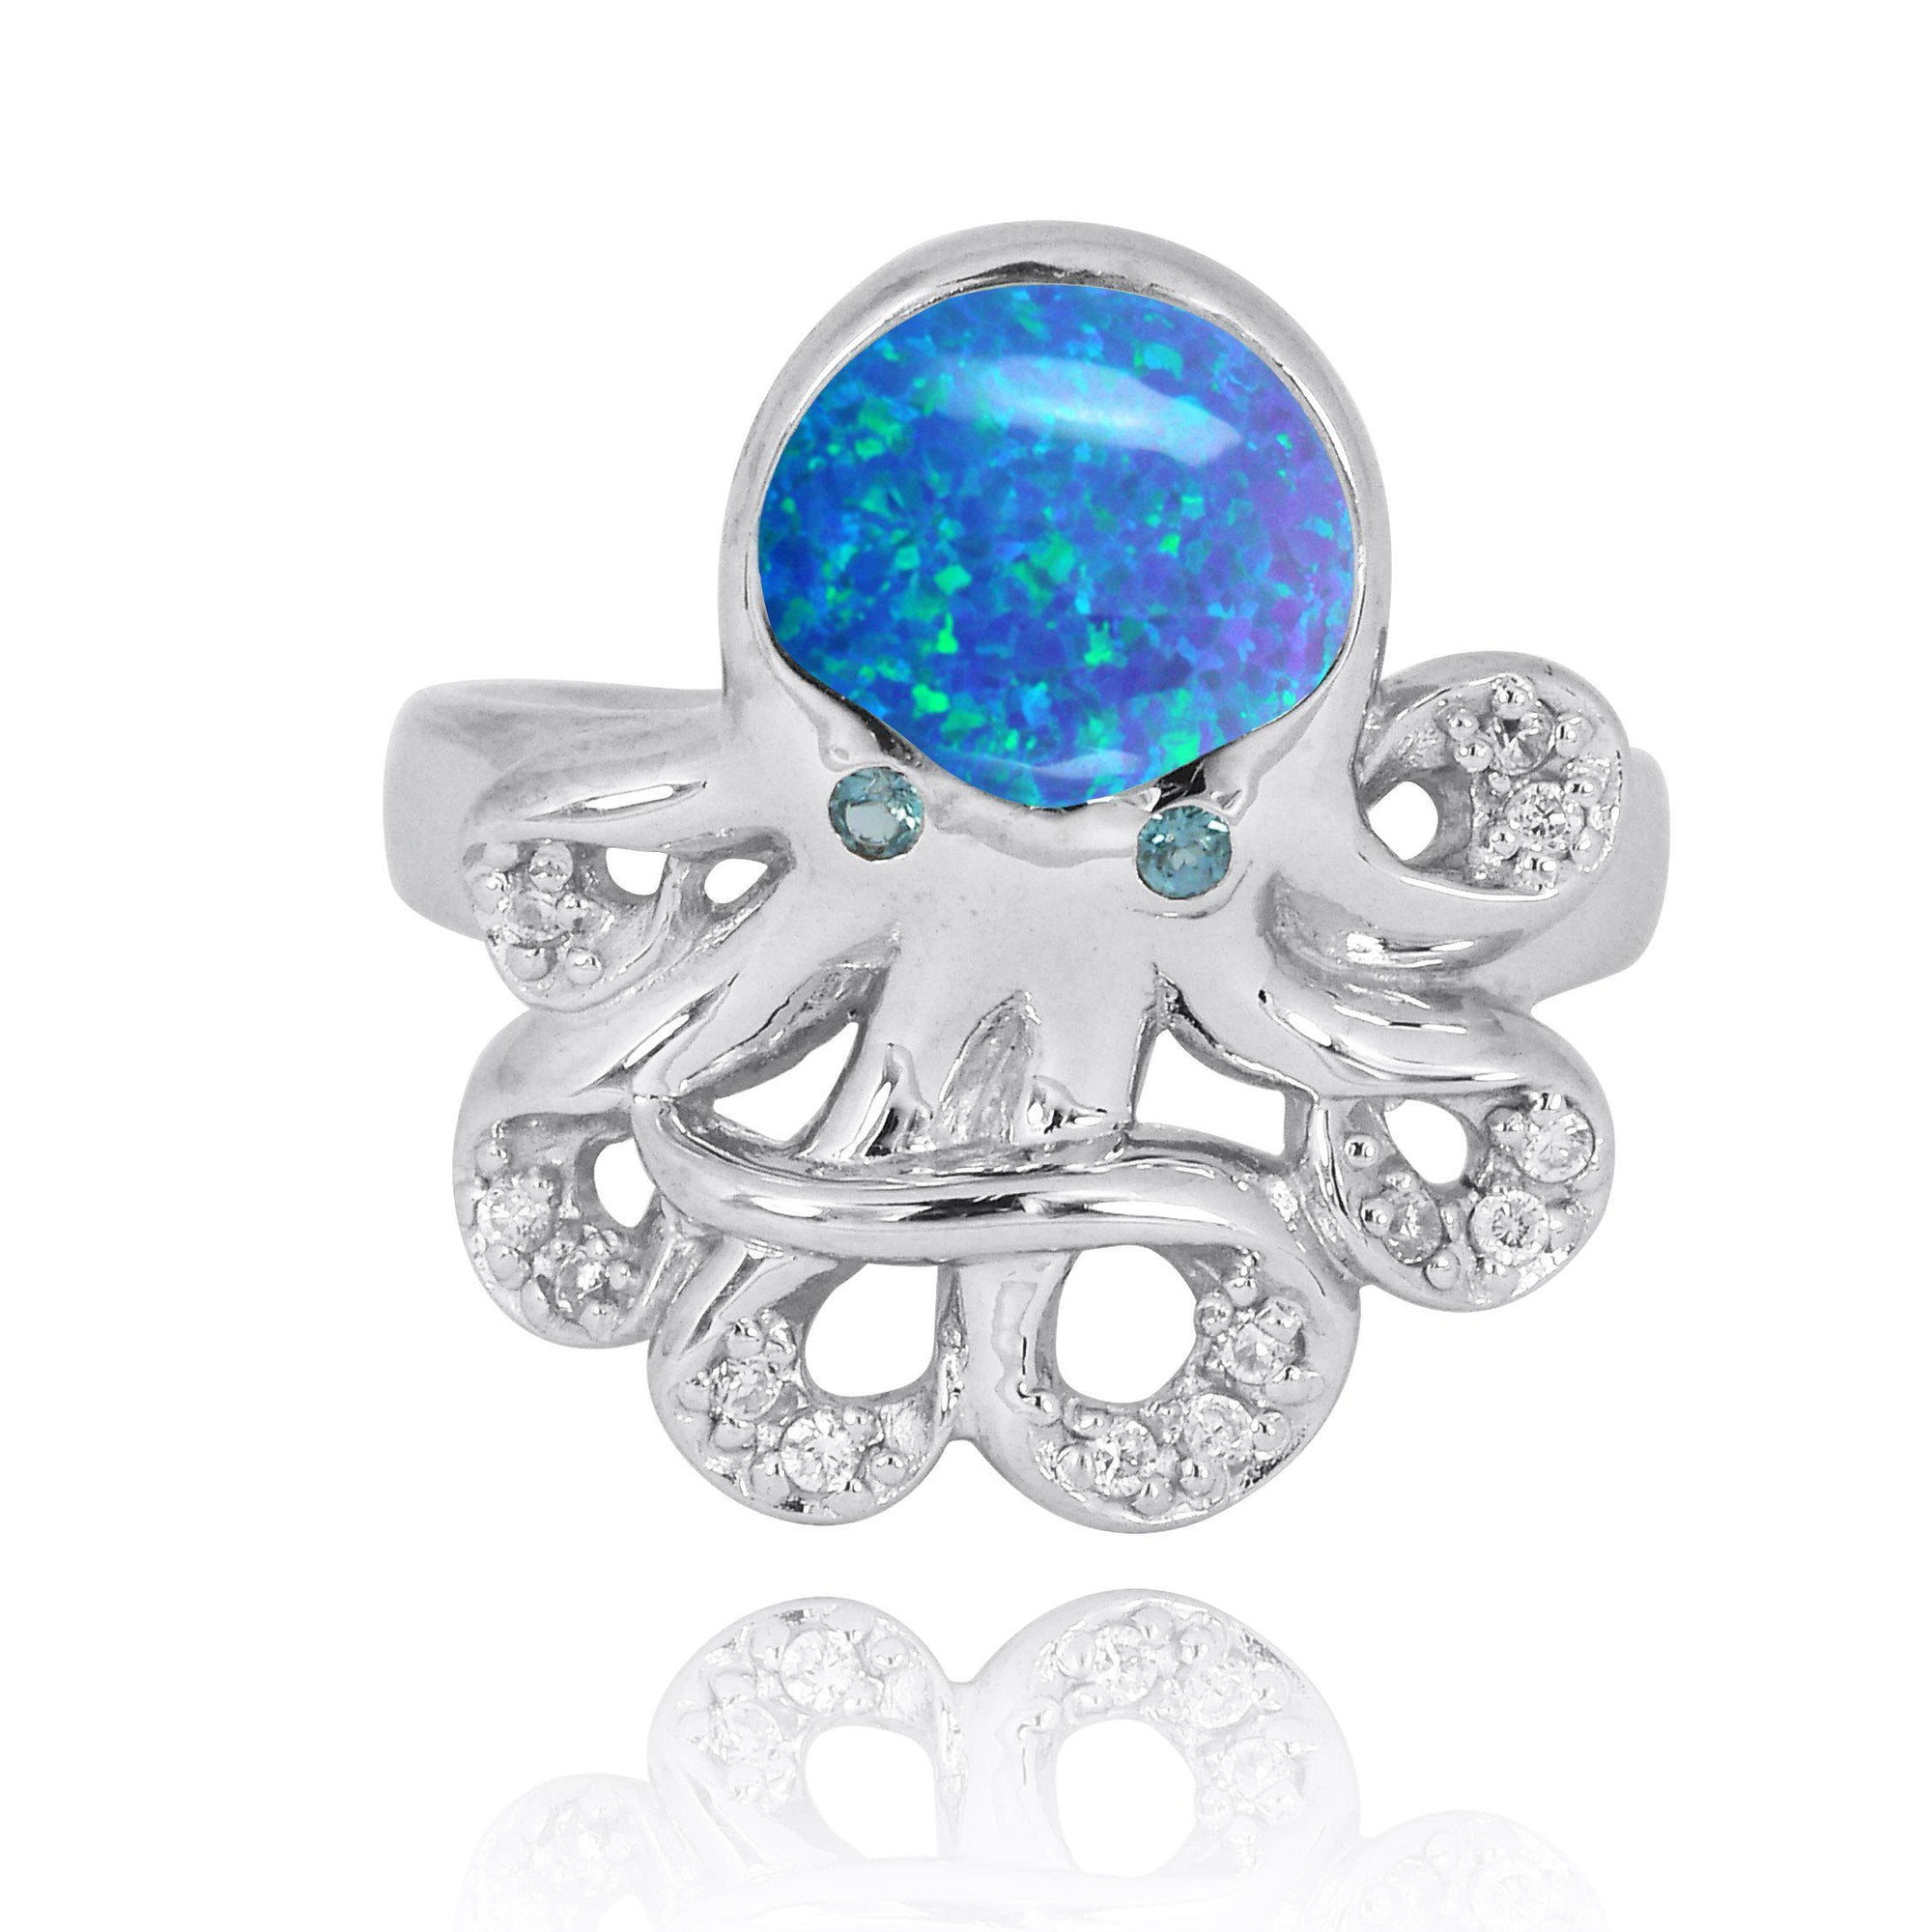 Ring-Sterling Silver Octopus with Blue Opal and London Blue Topaz Ring-Coastal Passion